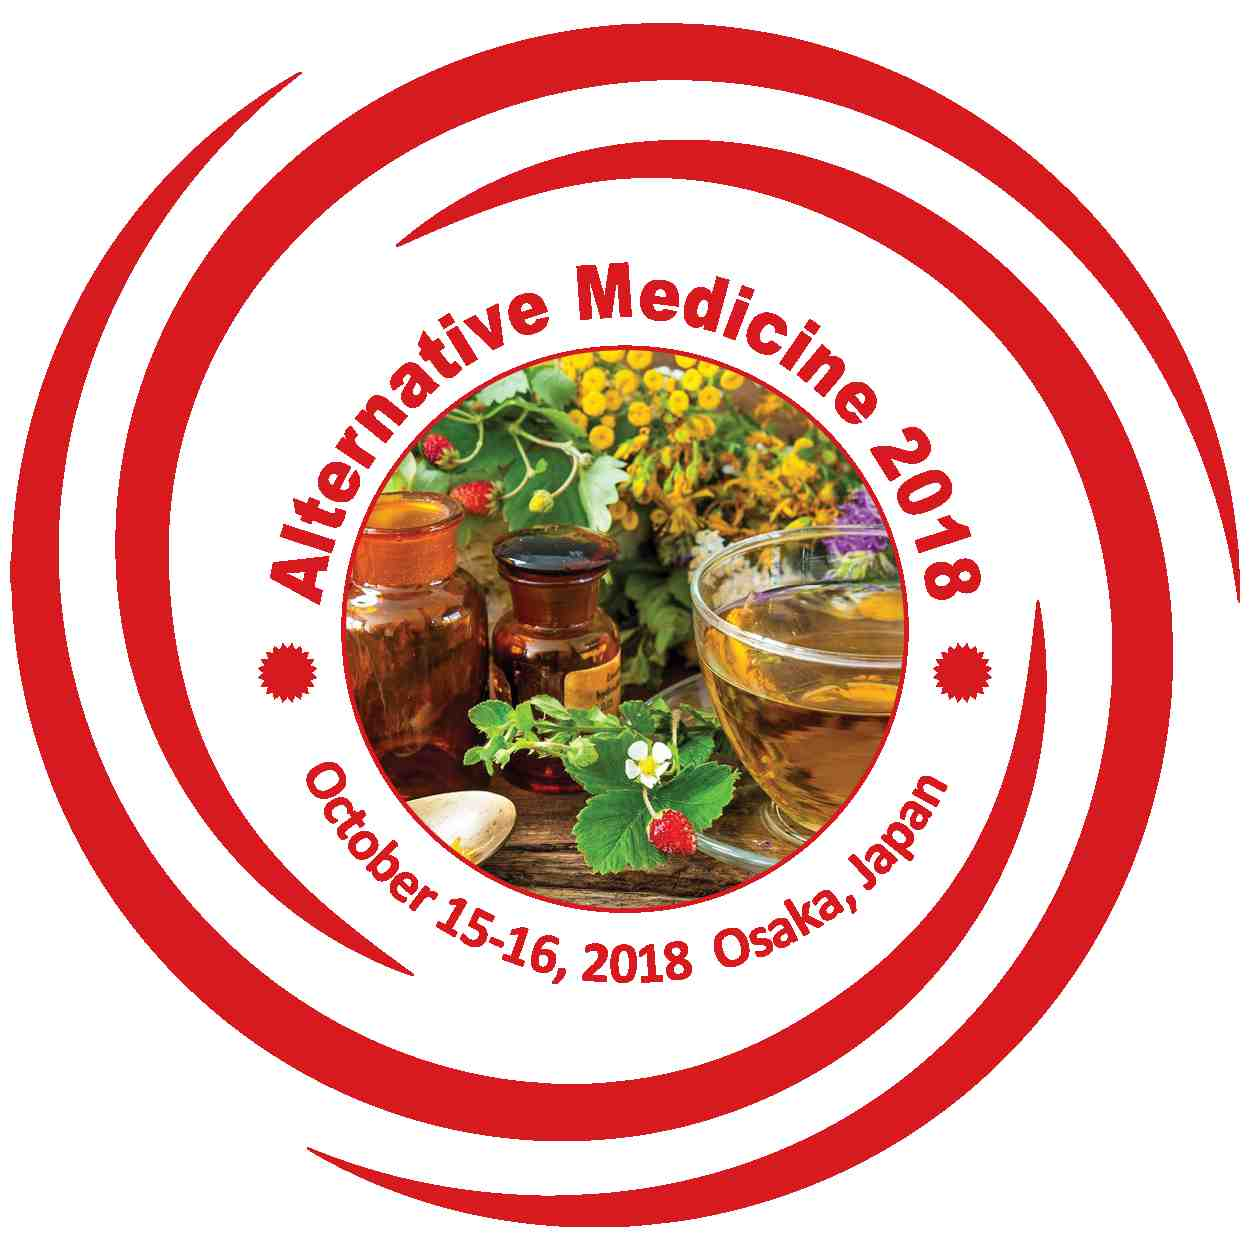 https://alternative-traditionalmedicine.pulsusconference.com/